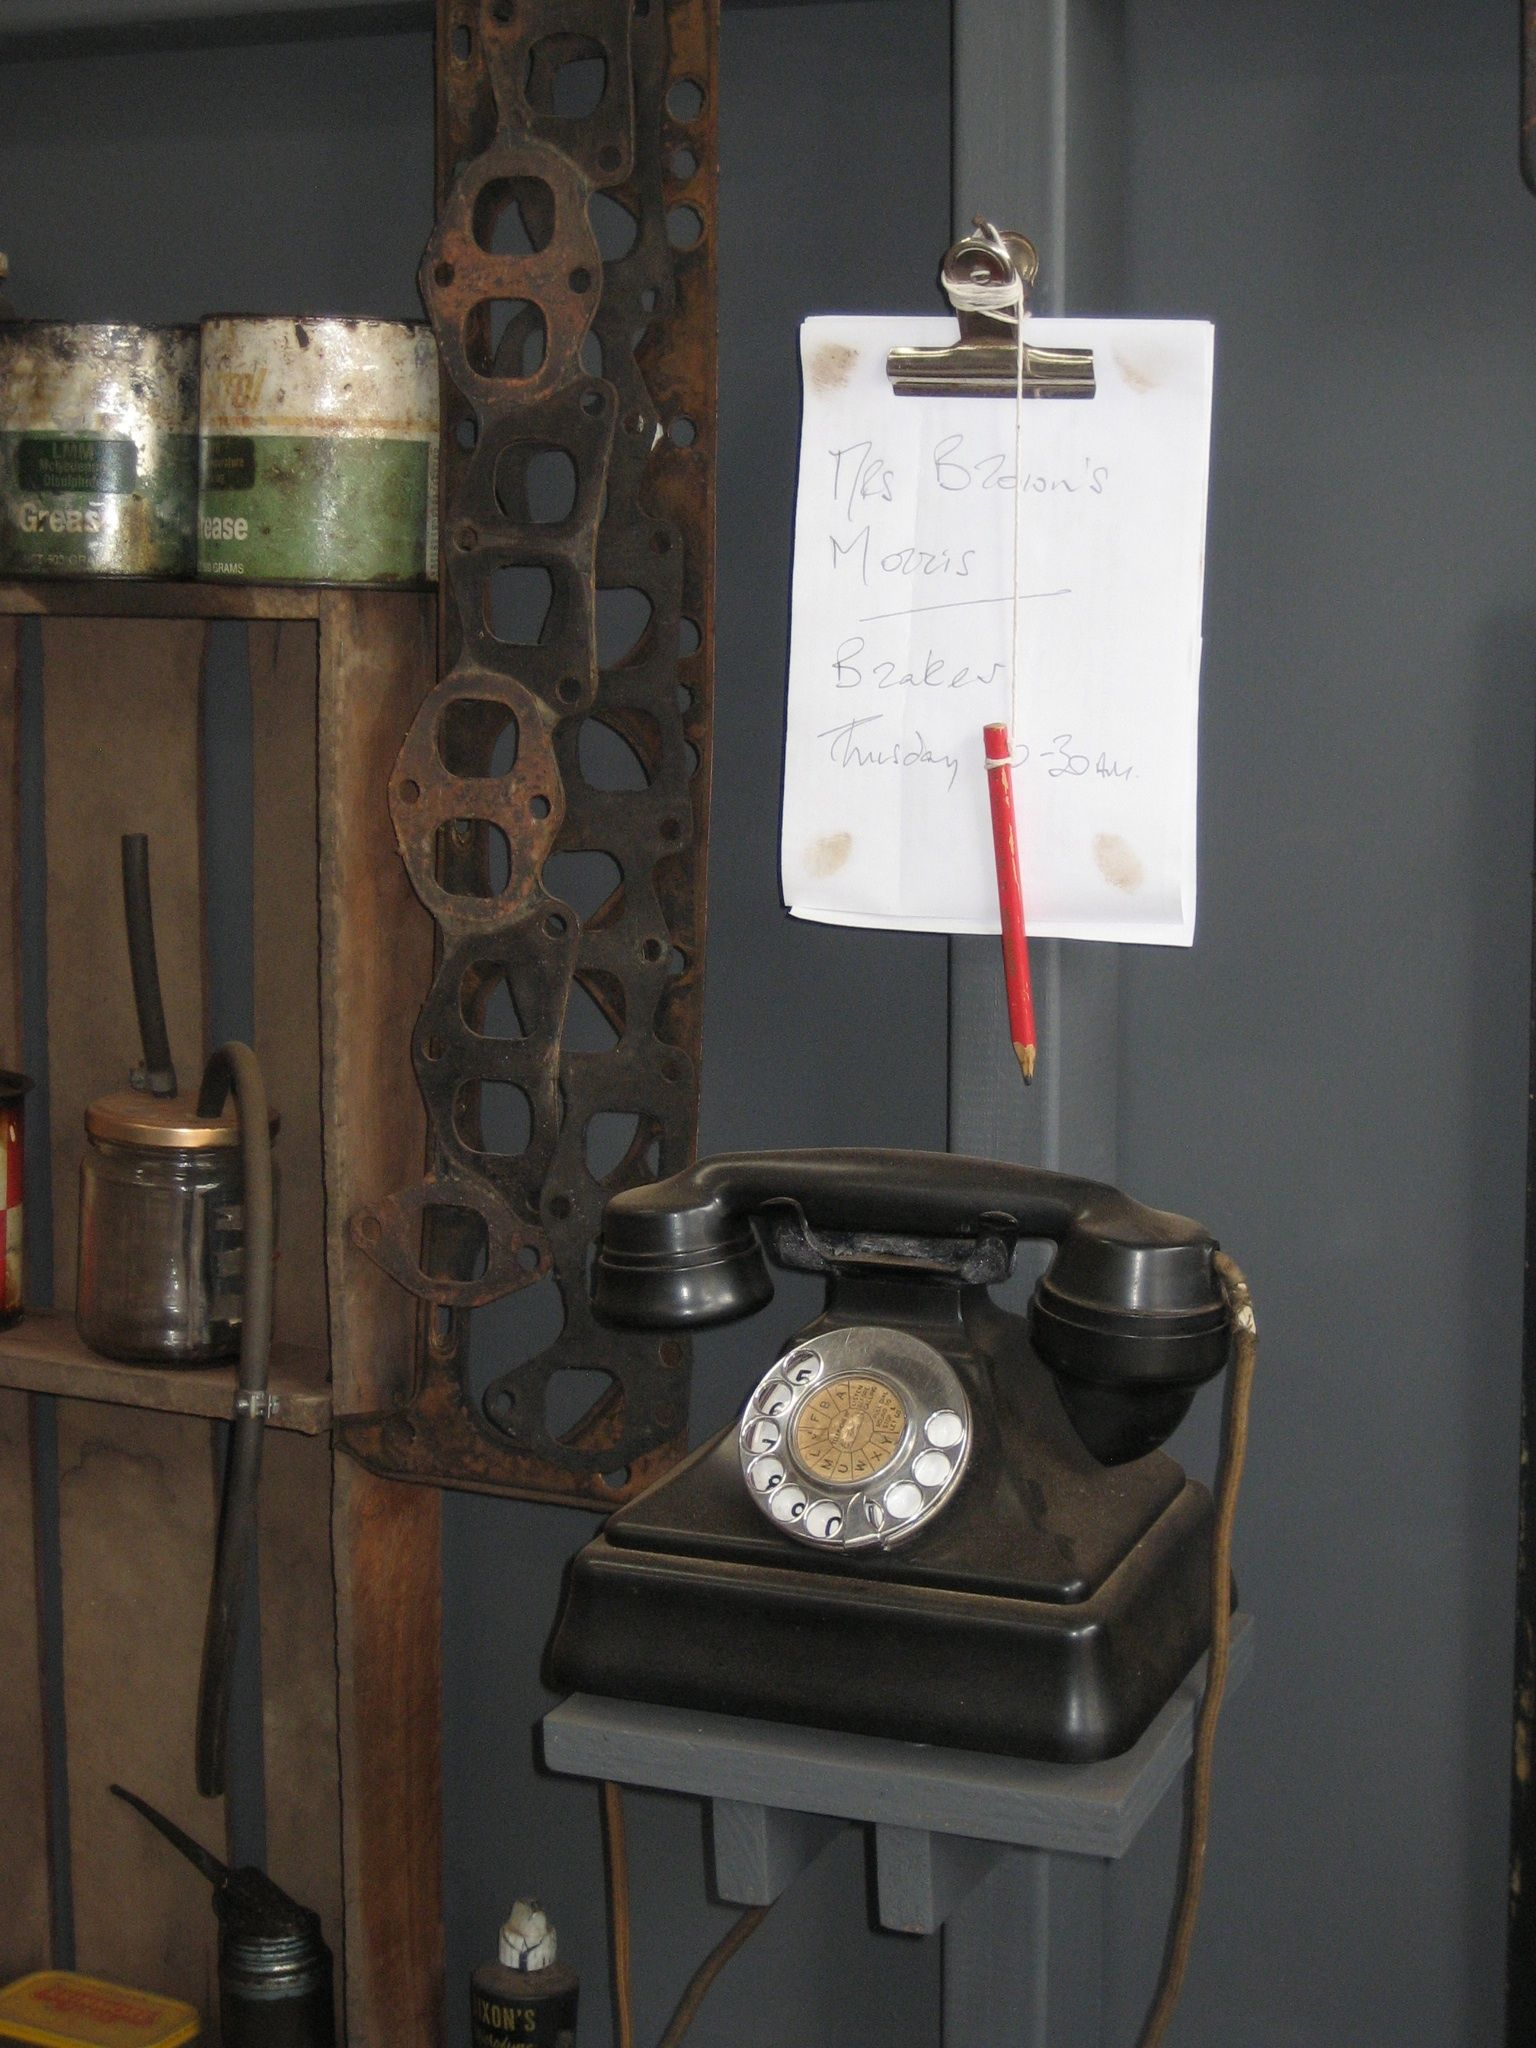 My niece and I went mini-adventuring at the Kalamunda History Village today in the Perth Hills. http://www.kalamunda.wa.gov.au/Leisure-Tourism/Arts-Culture/ZZCC I got rather excited by all the beautiful old telephones. There will be more of these coming.